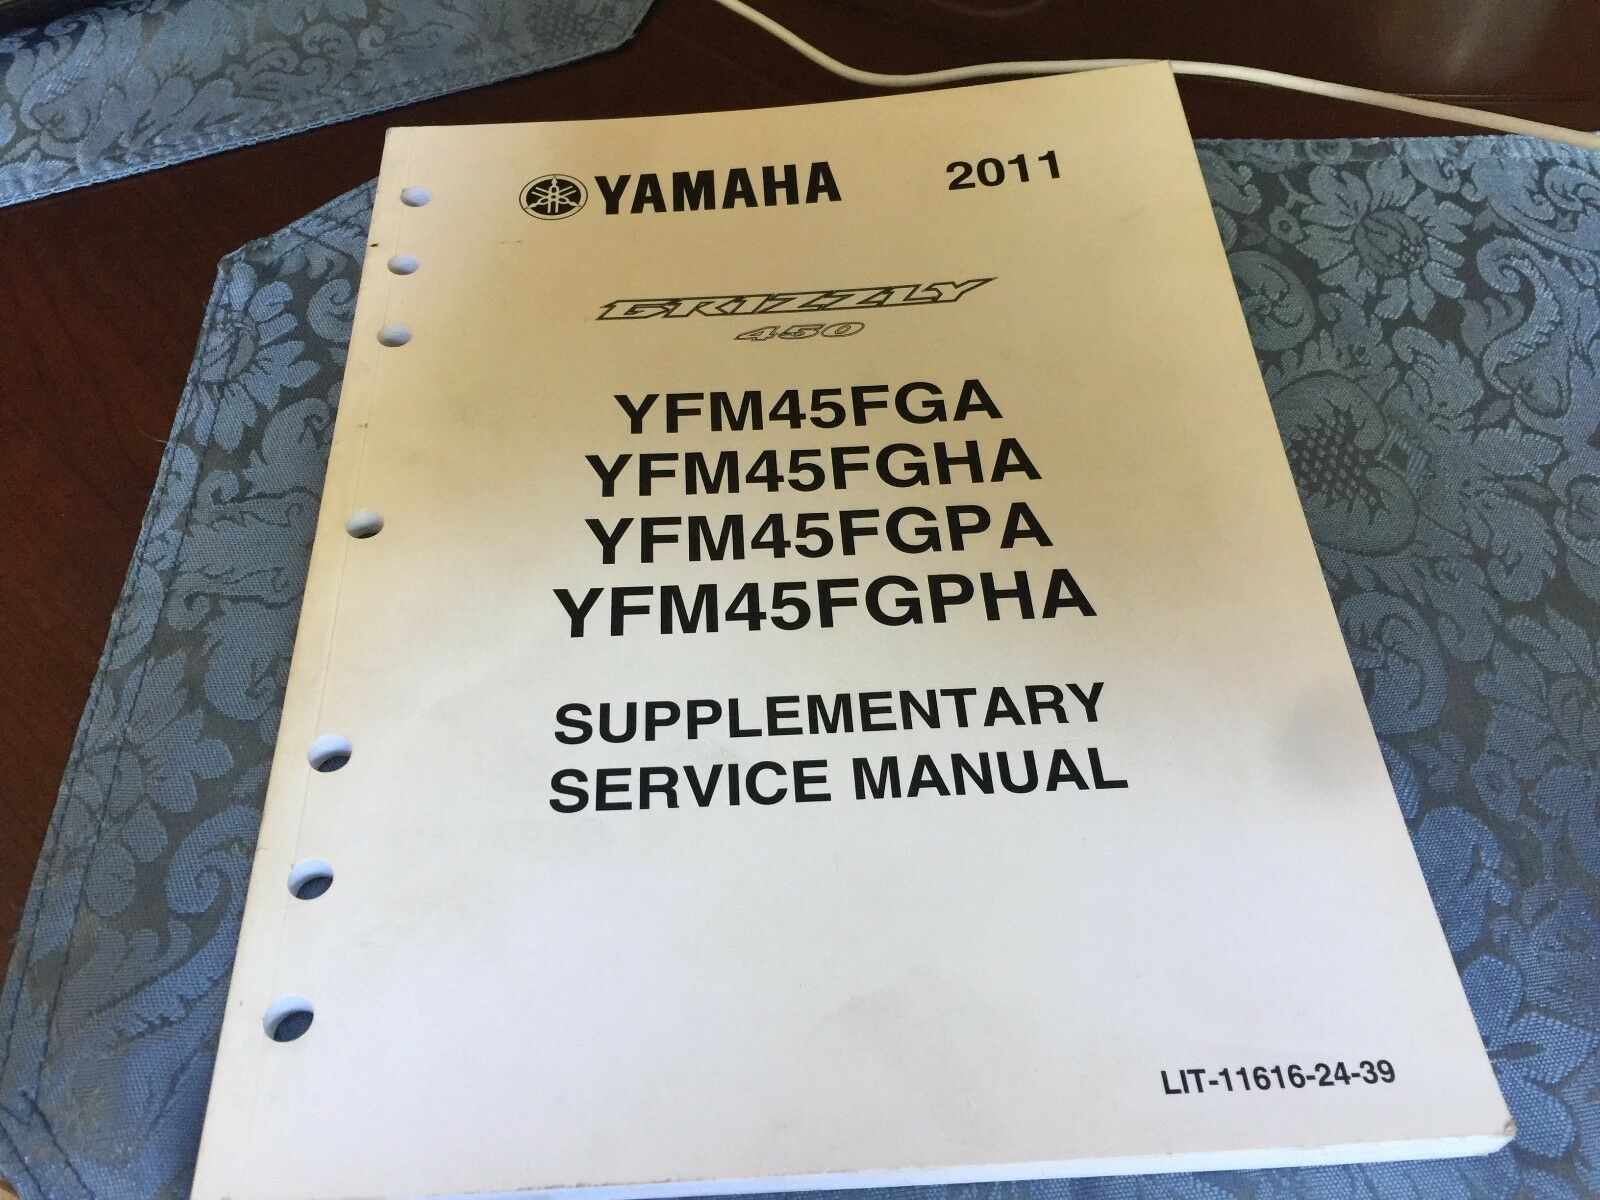 YAMAHA Supplementary Service Manual YFM45FGA Grizzly 450 2011  (LIT-11616-24-39 1 of 4Only 1 available ...